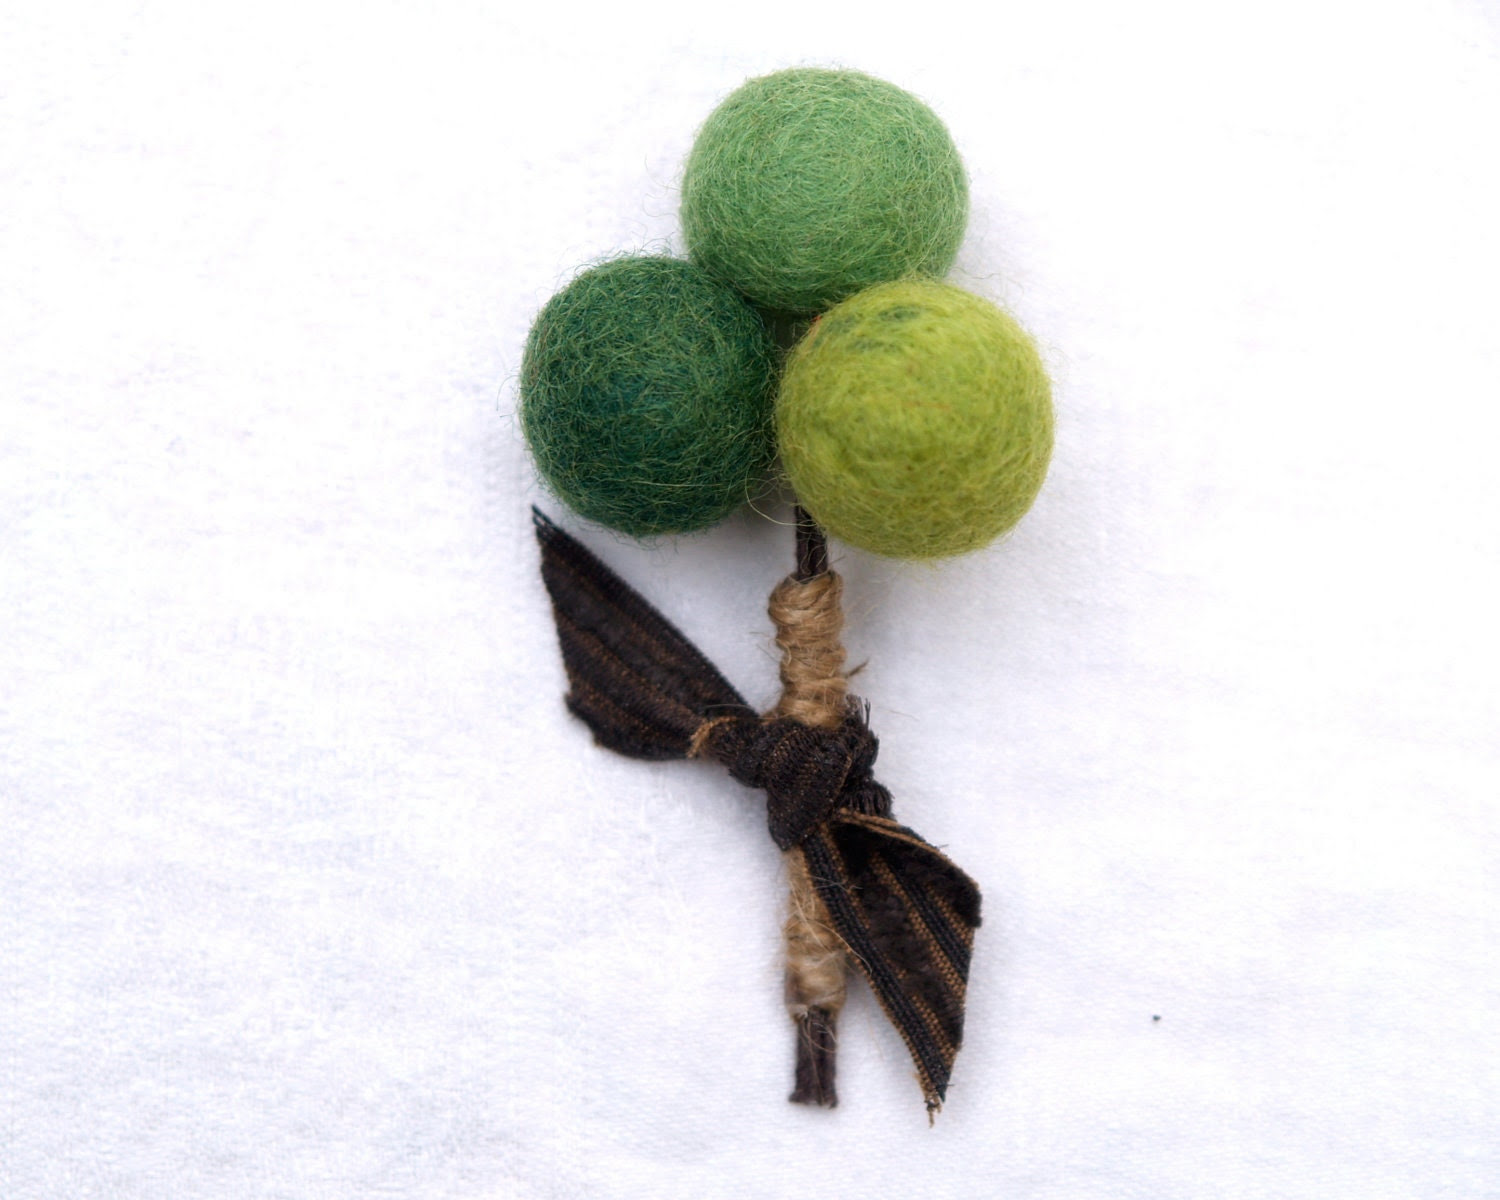 Grooms Boutonniere Wedding Woodland Groomsman Groomsmen Green Craspedia Bouquet billy button ball flower felt dried Spring Summer fun 1